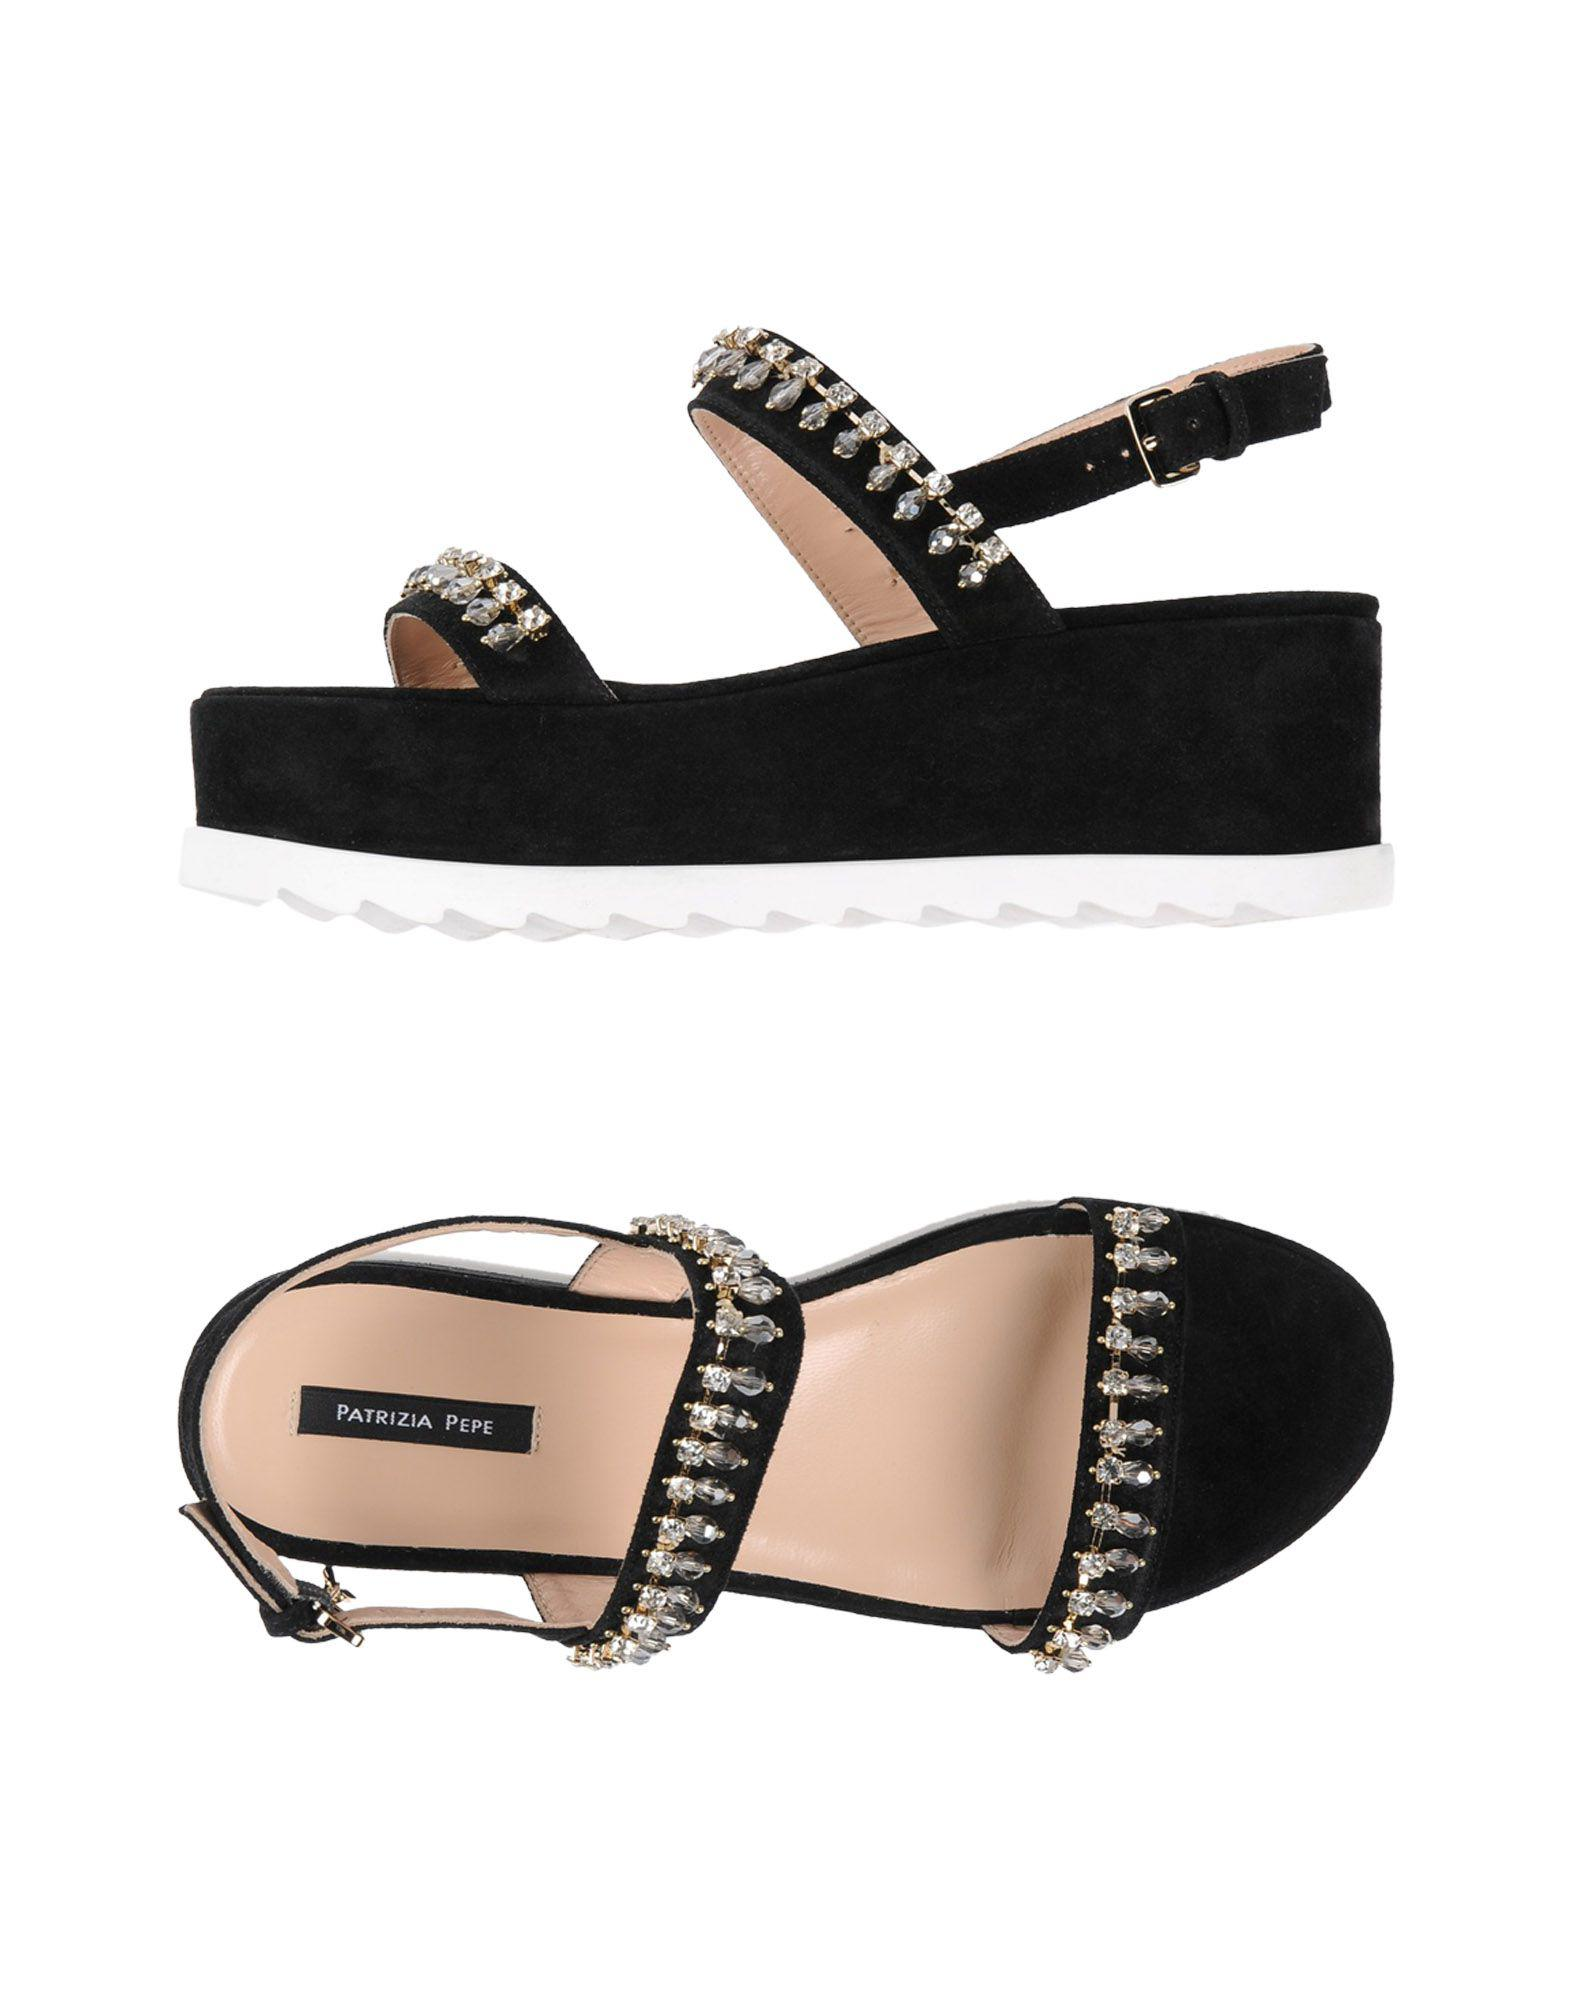 Lyst - Patrizia Pepe Sandals in Black a435f7b8160